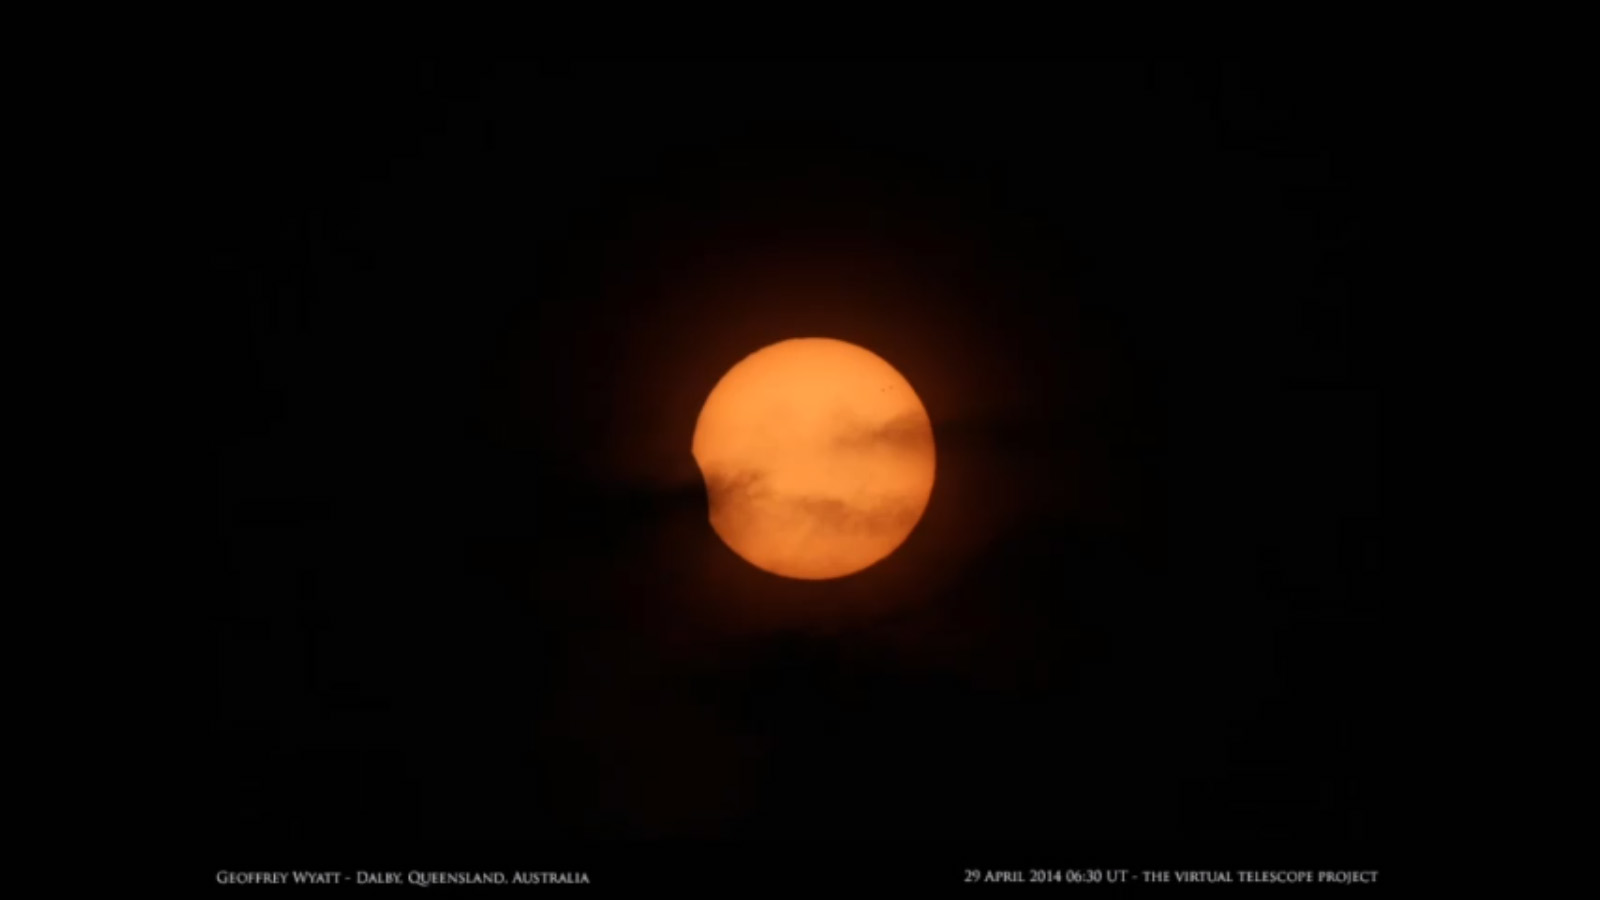 Partial Solar Eclipse of April 29, 2014: Geoffrey Wyatt